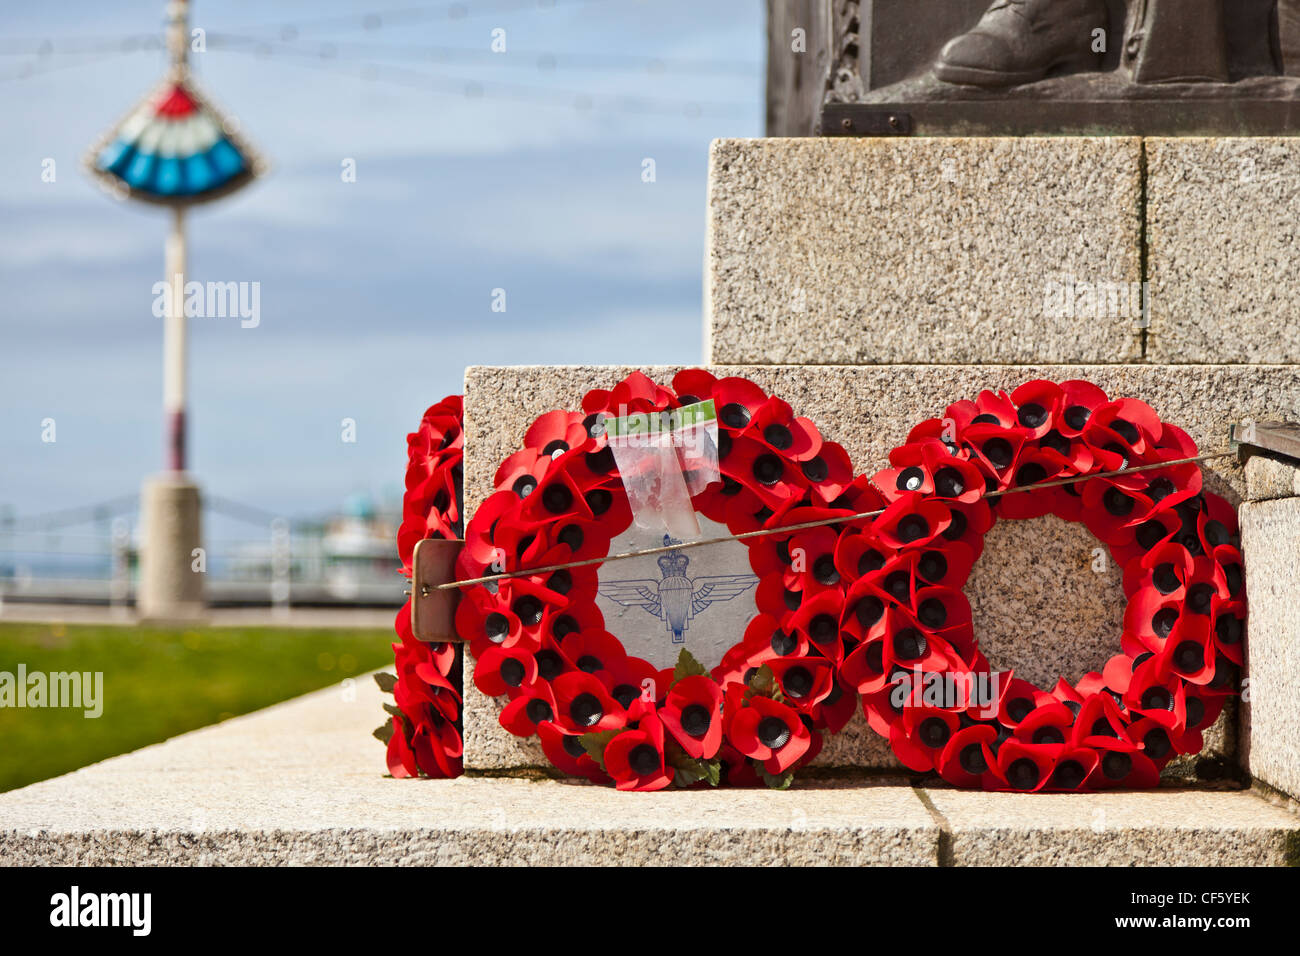 Poppy wreaths laid in remembrance at the foot of the war memorial on the seafront at Blackpool. - Stock Image